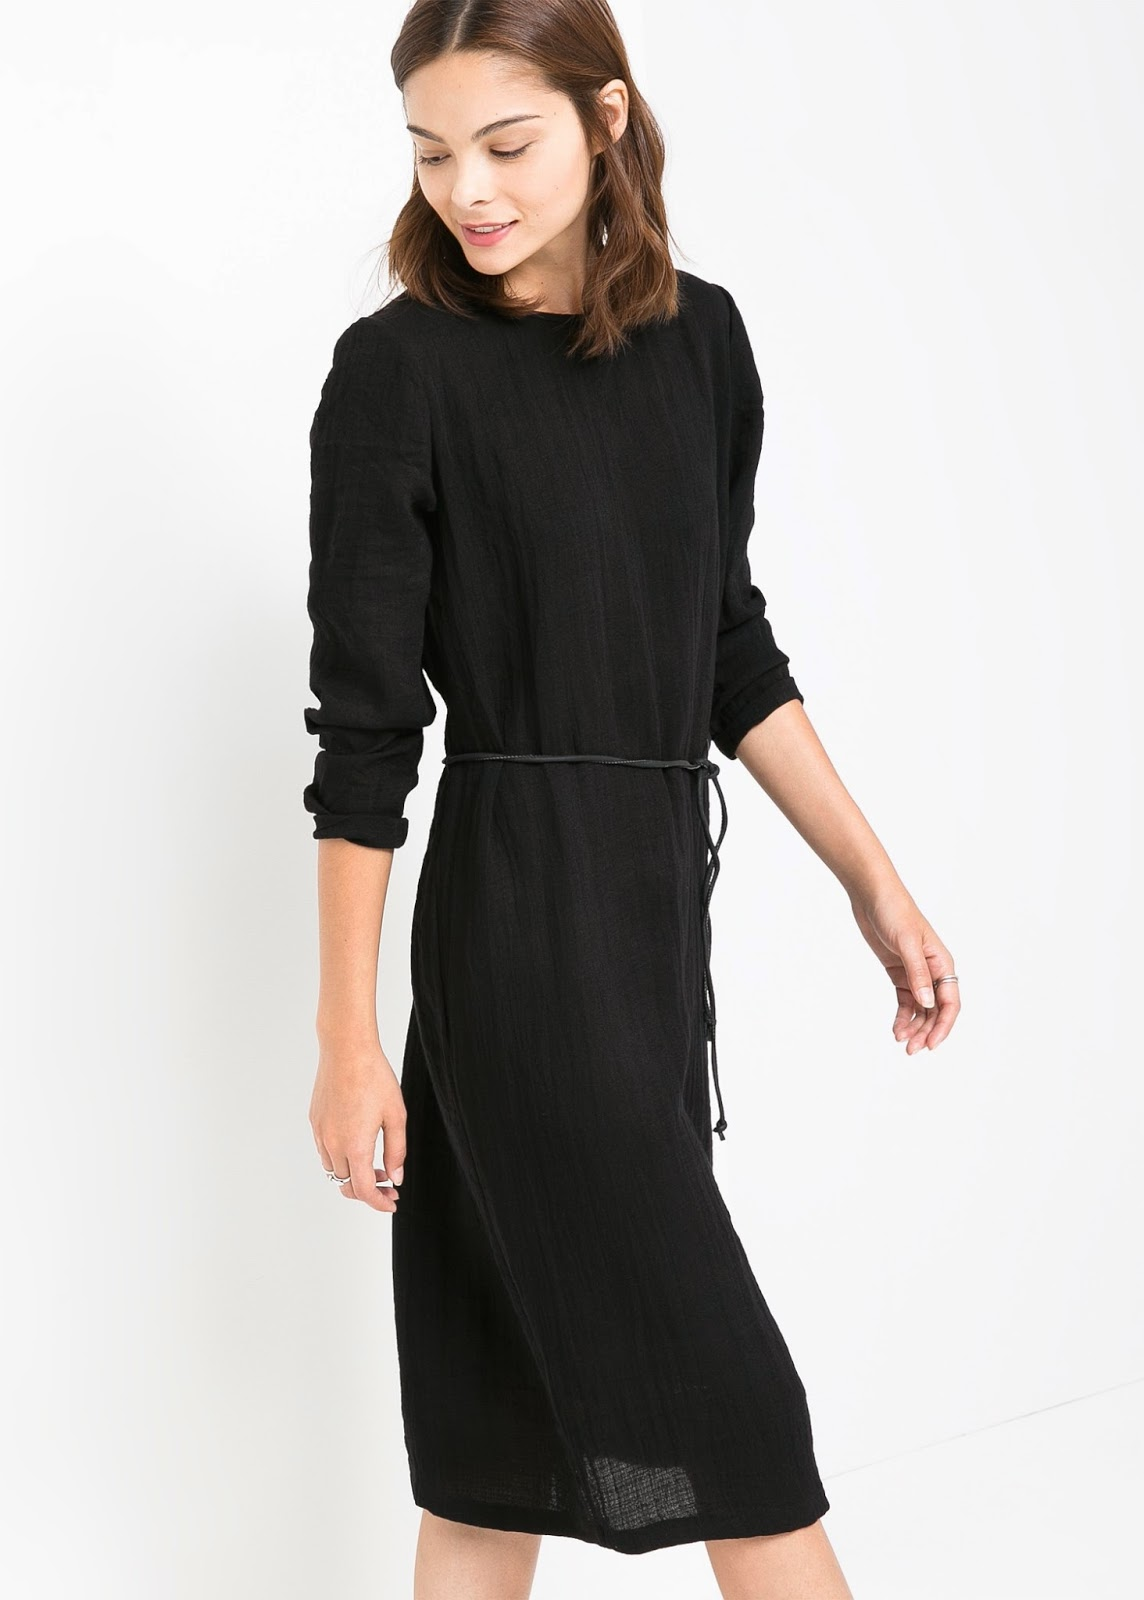 mango black waist dress